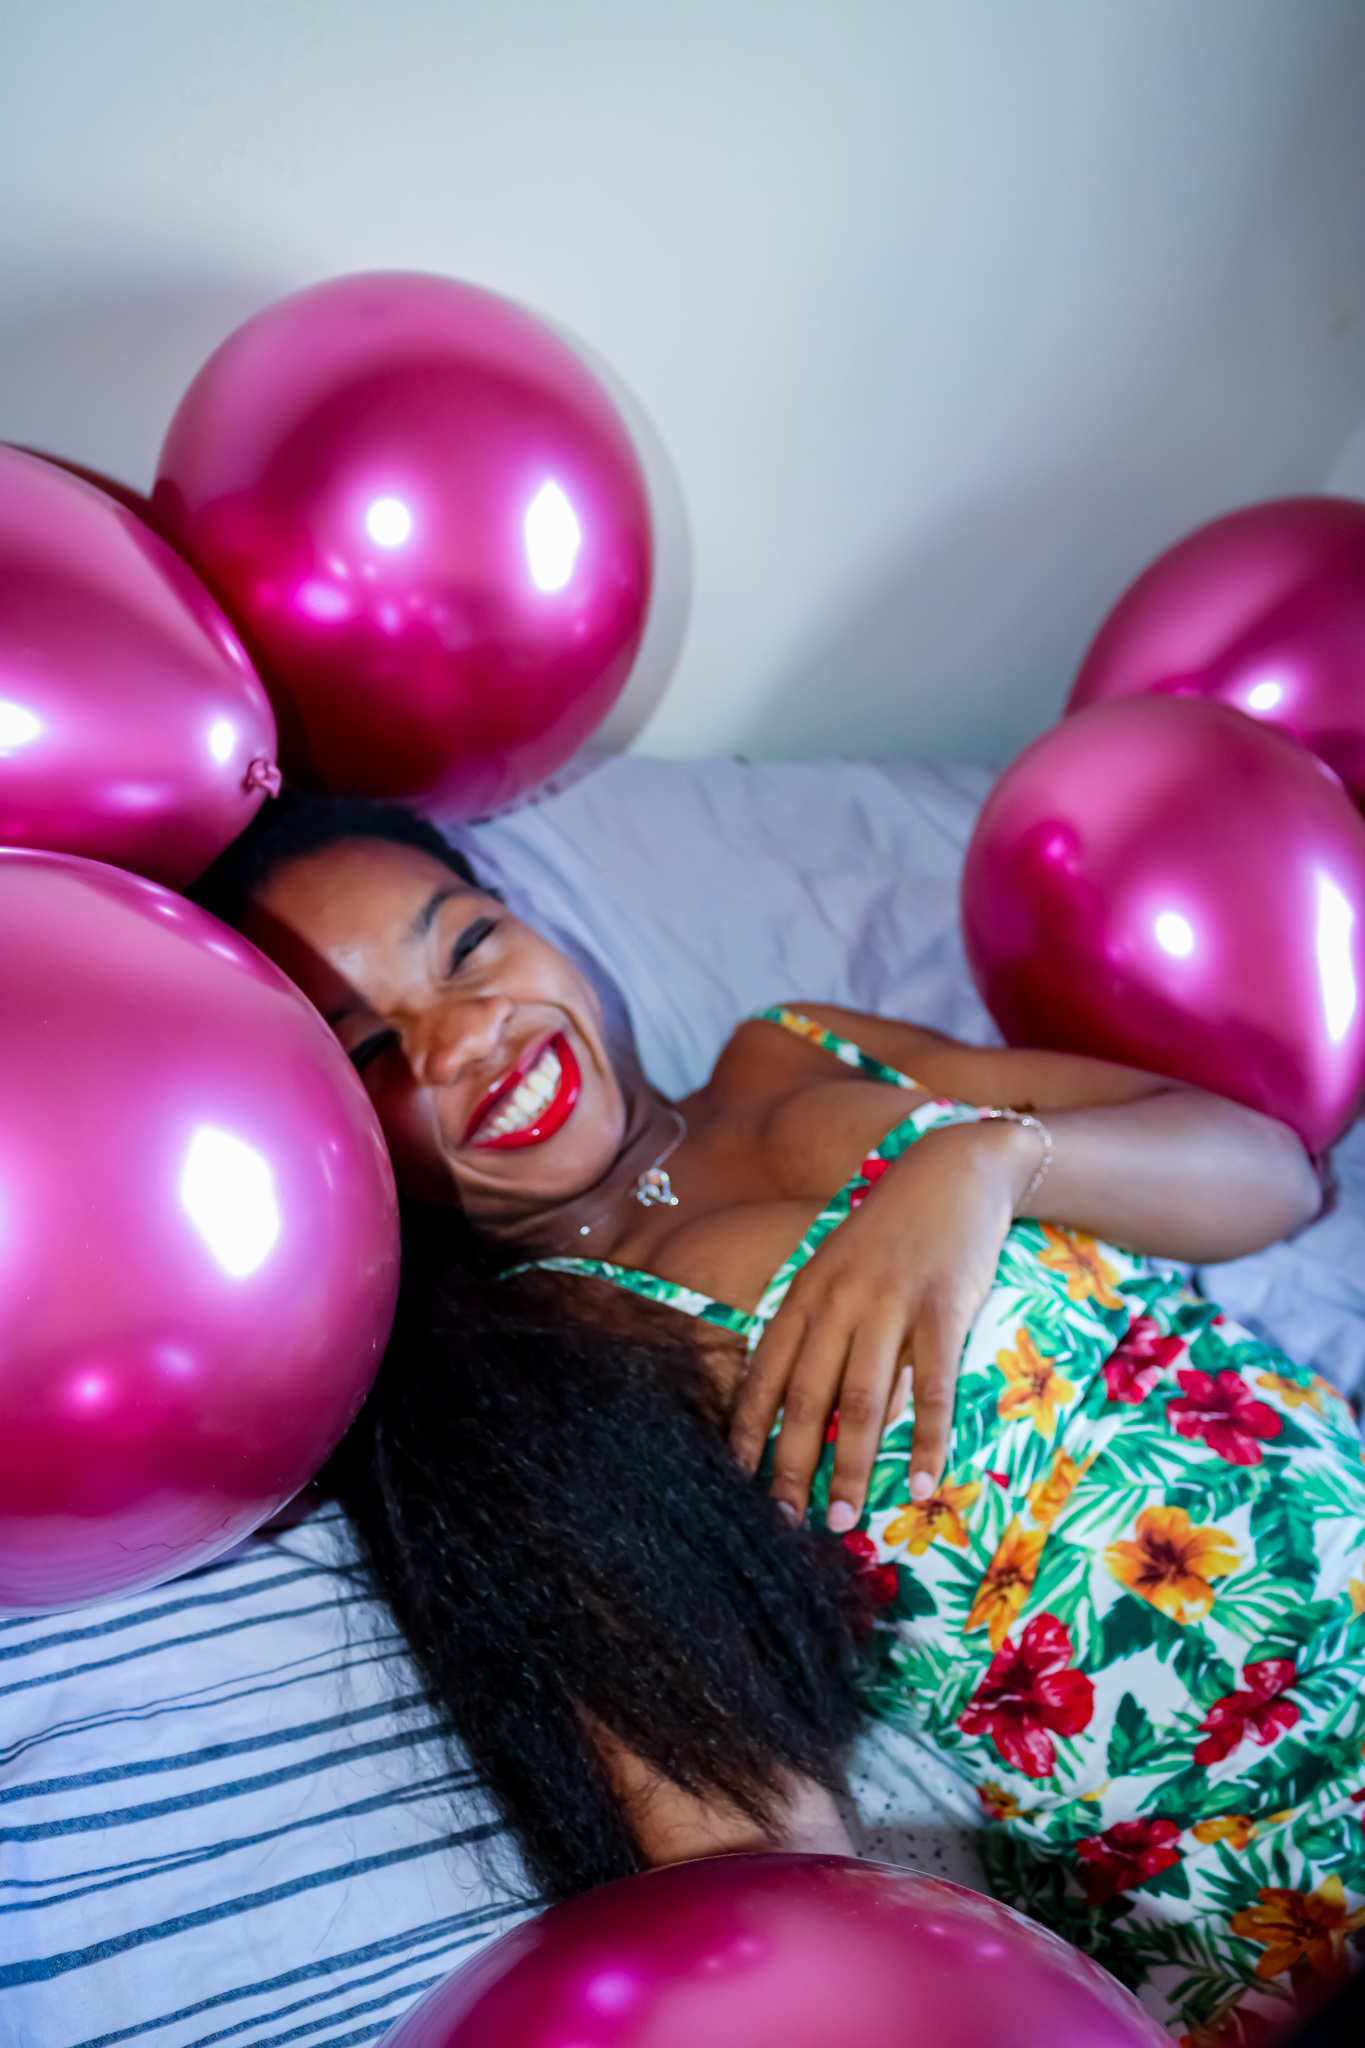 Rachy Lewis smiling in floral dress surrounded by balloons